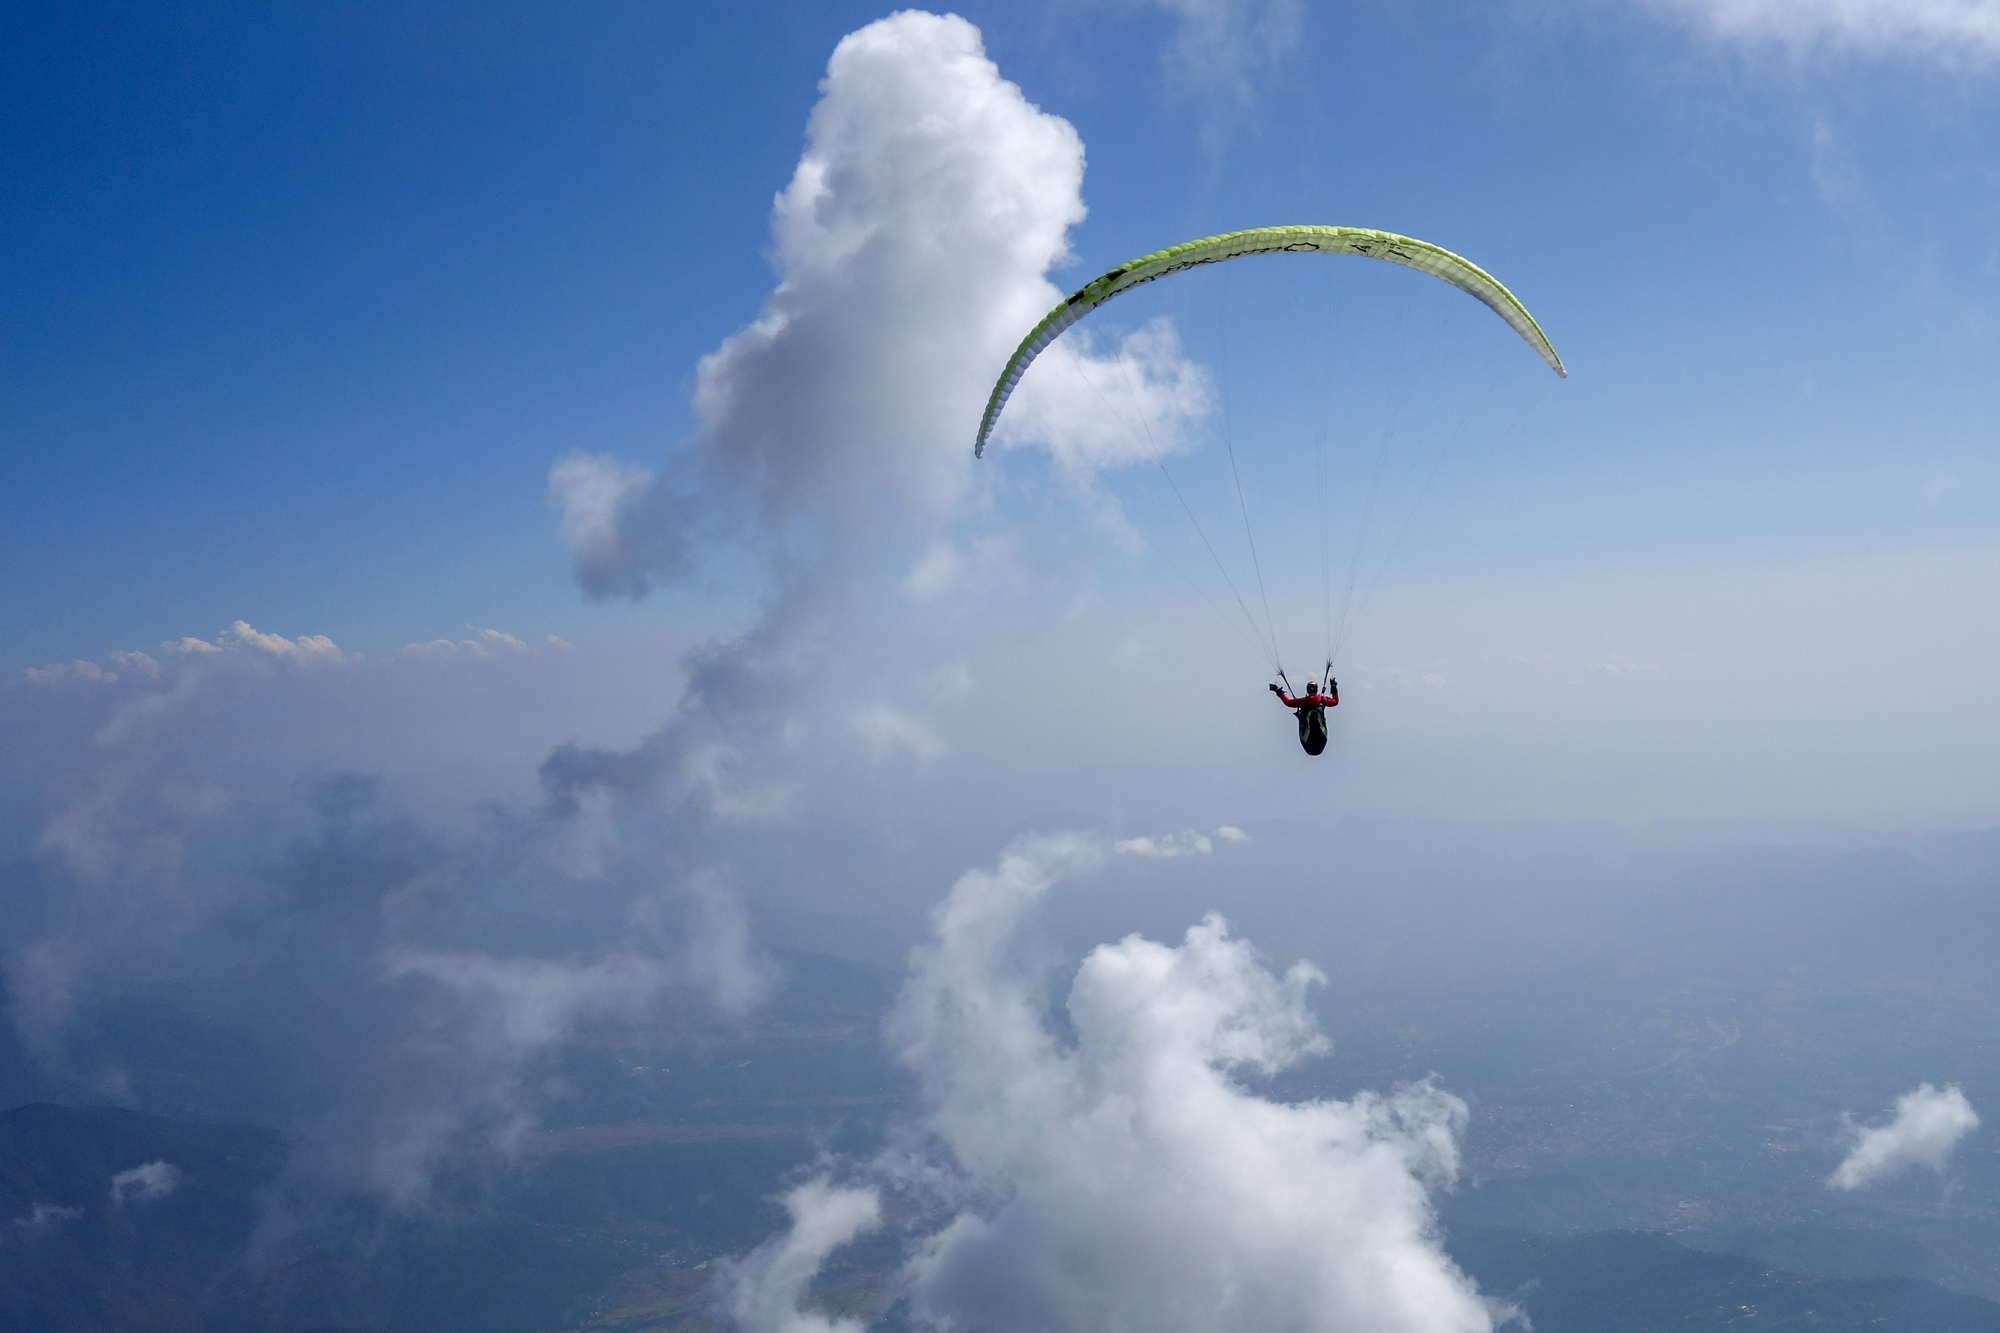 Loraine humeau cloud Bir Biling skywalk and supair altirando The Himalayan Paragliding Line (1 of 1)